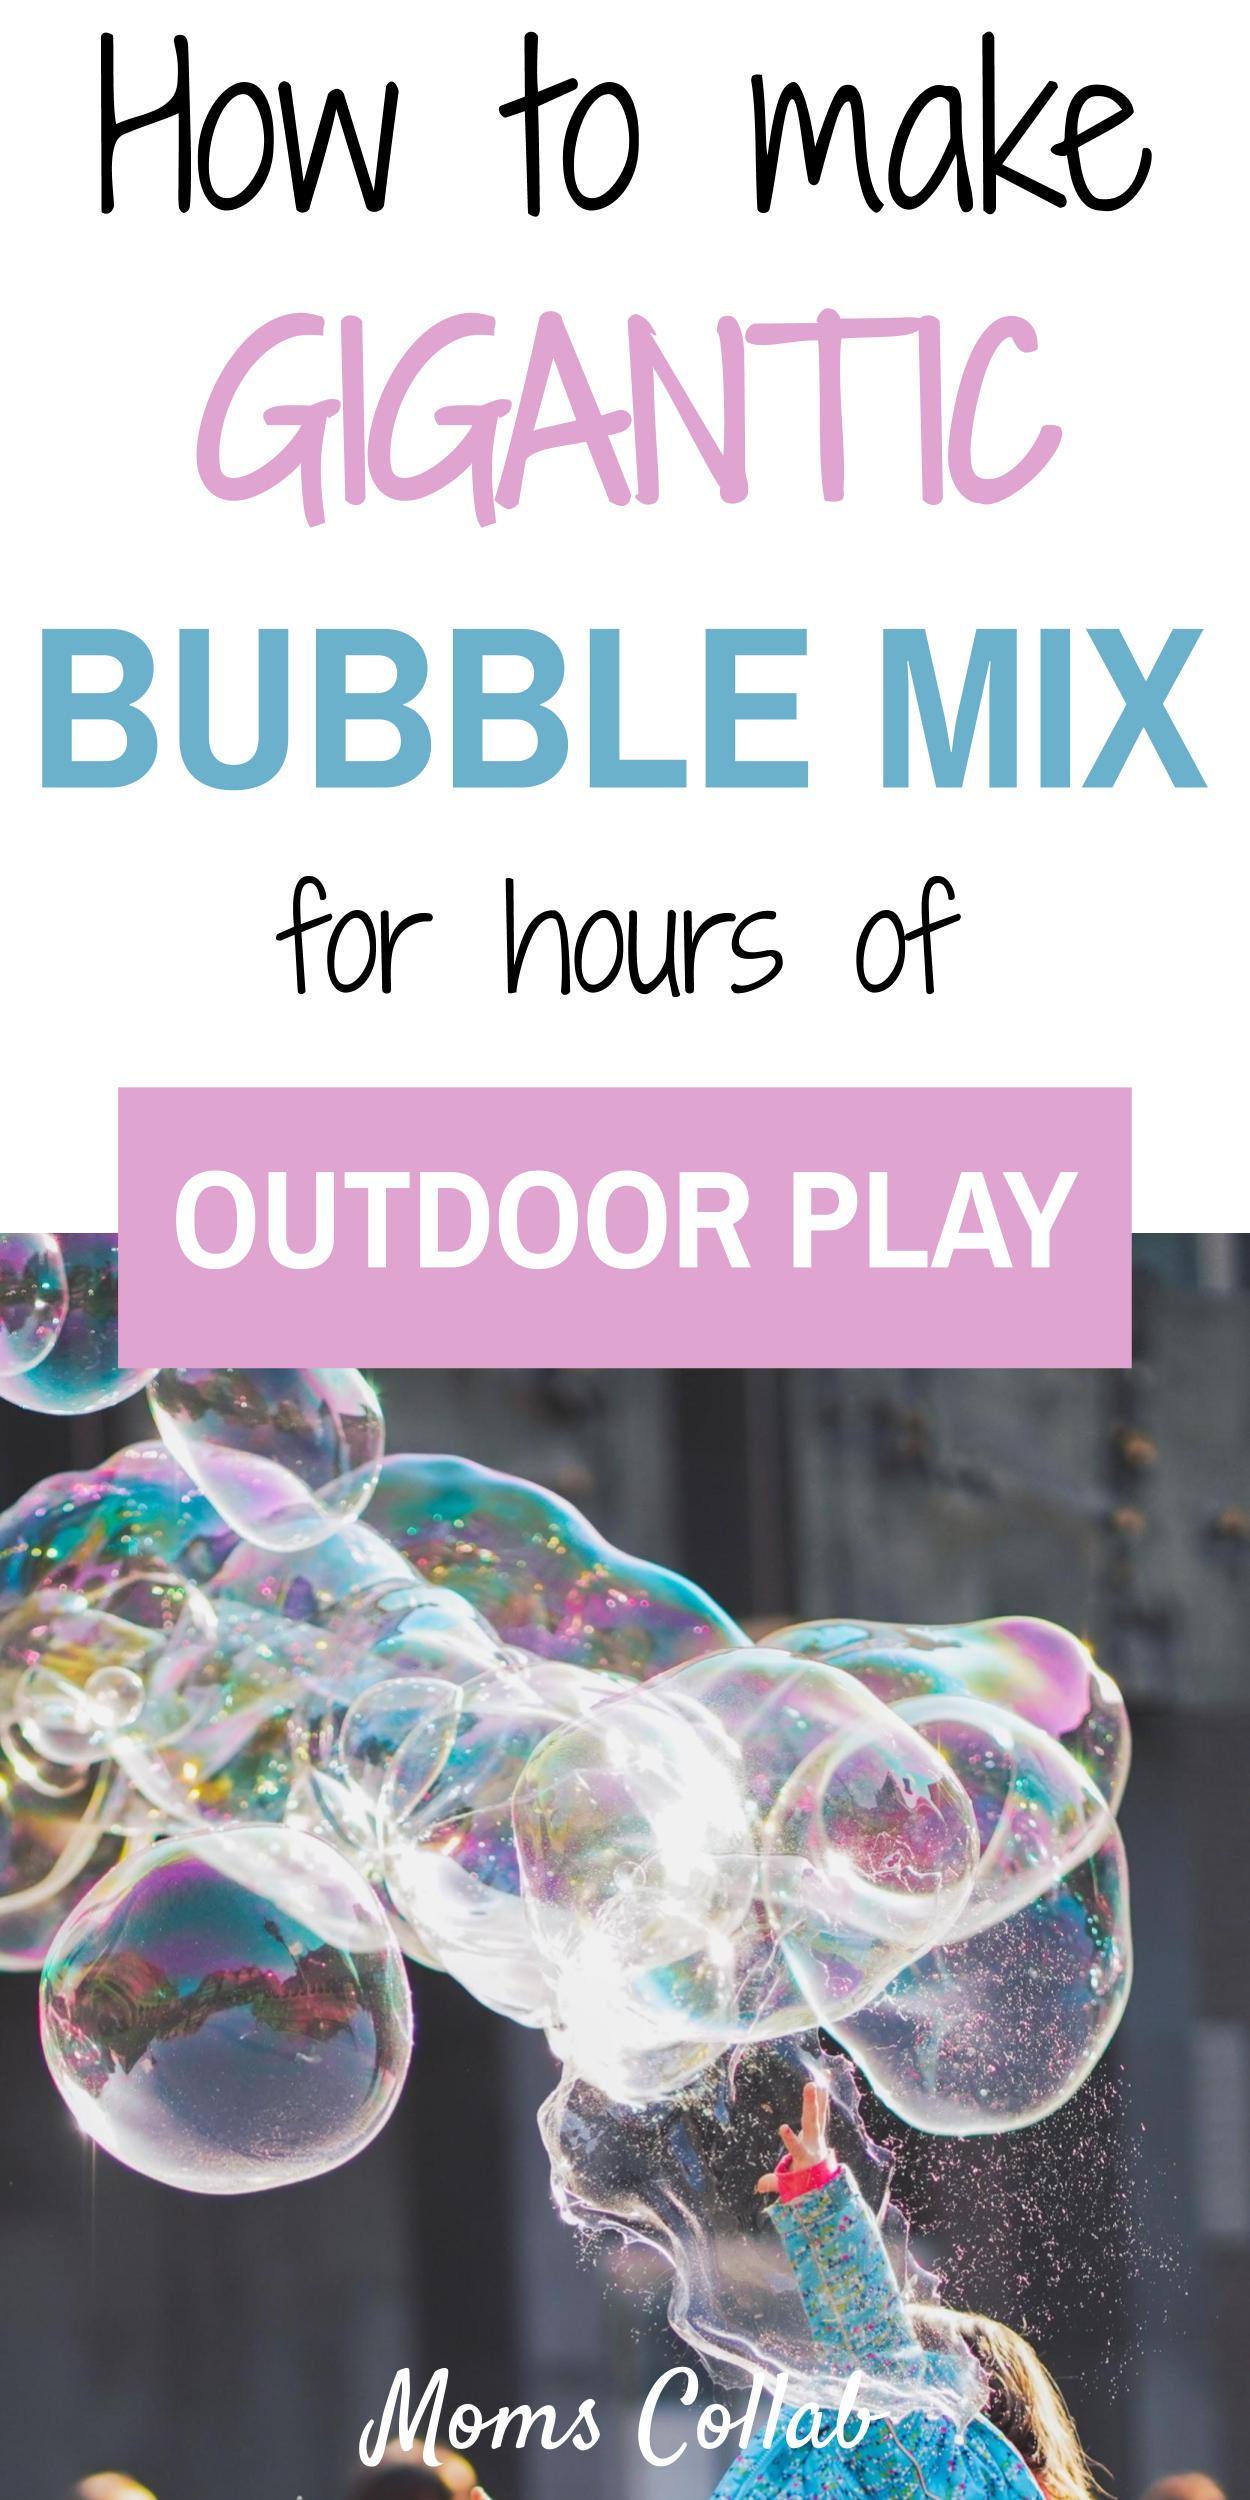 Gigantic bubble mix recipe